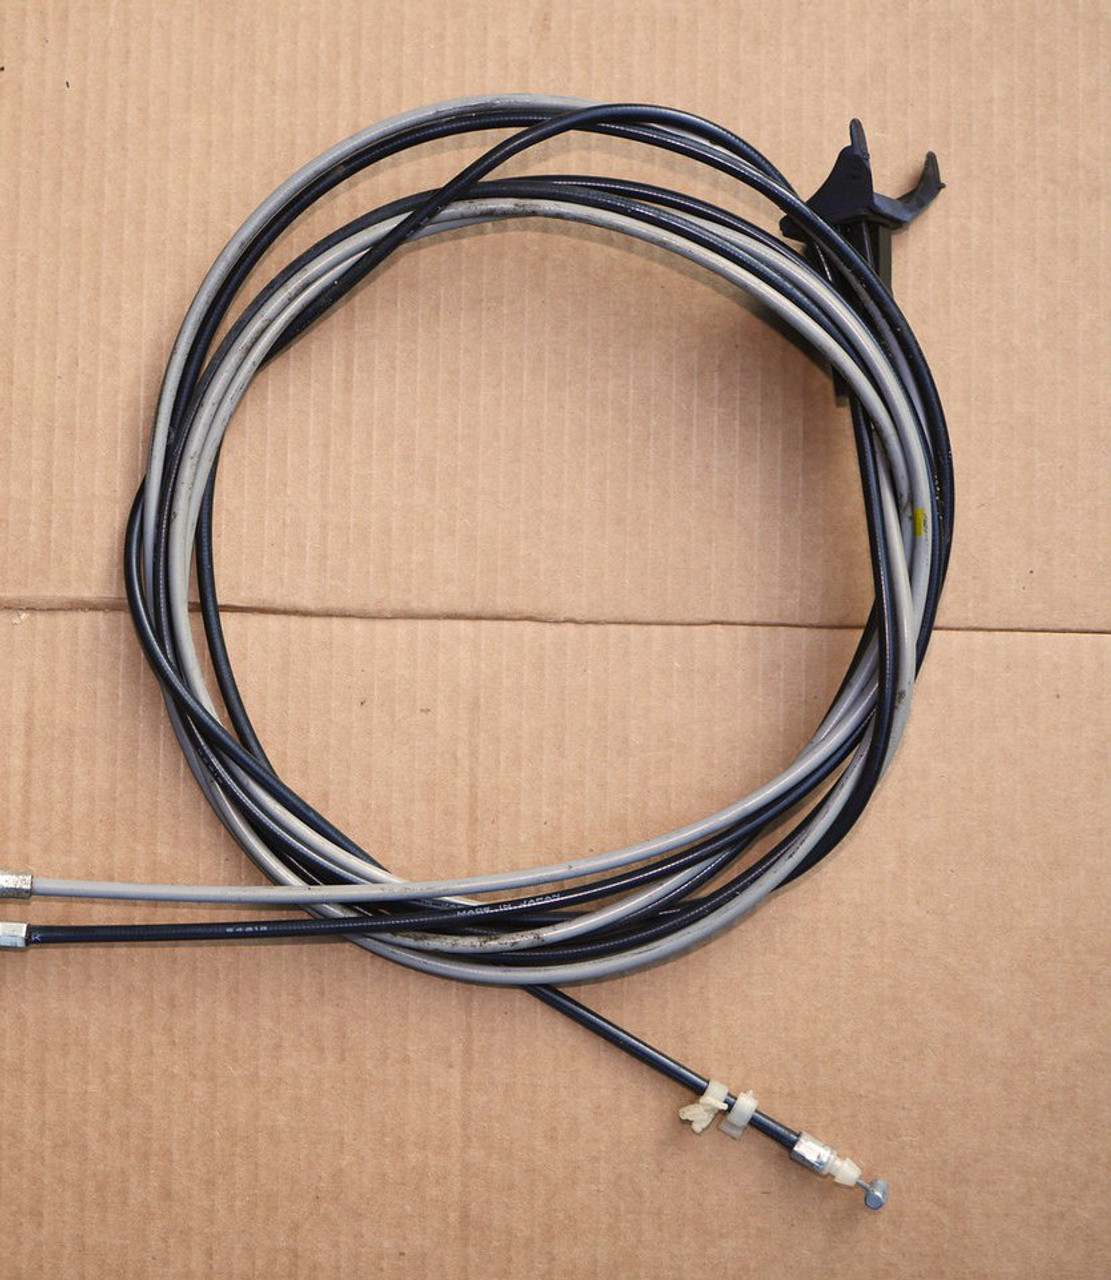 cable set for trunk release and fuel door GVR4